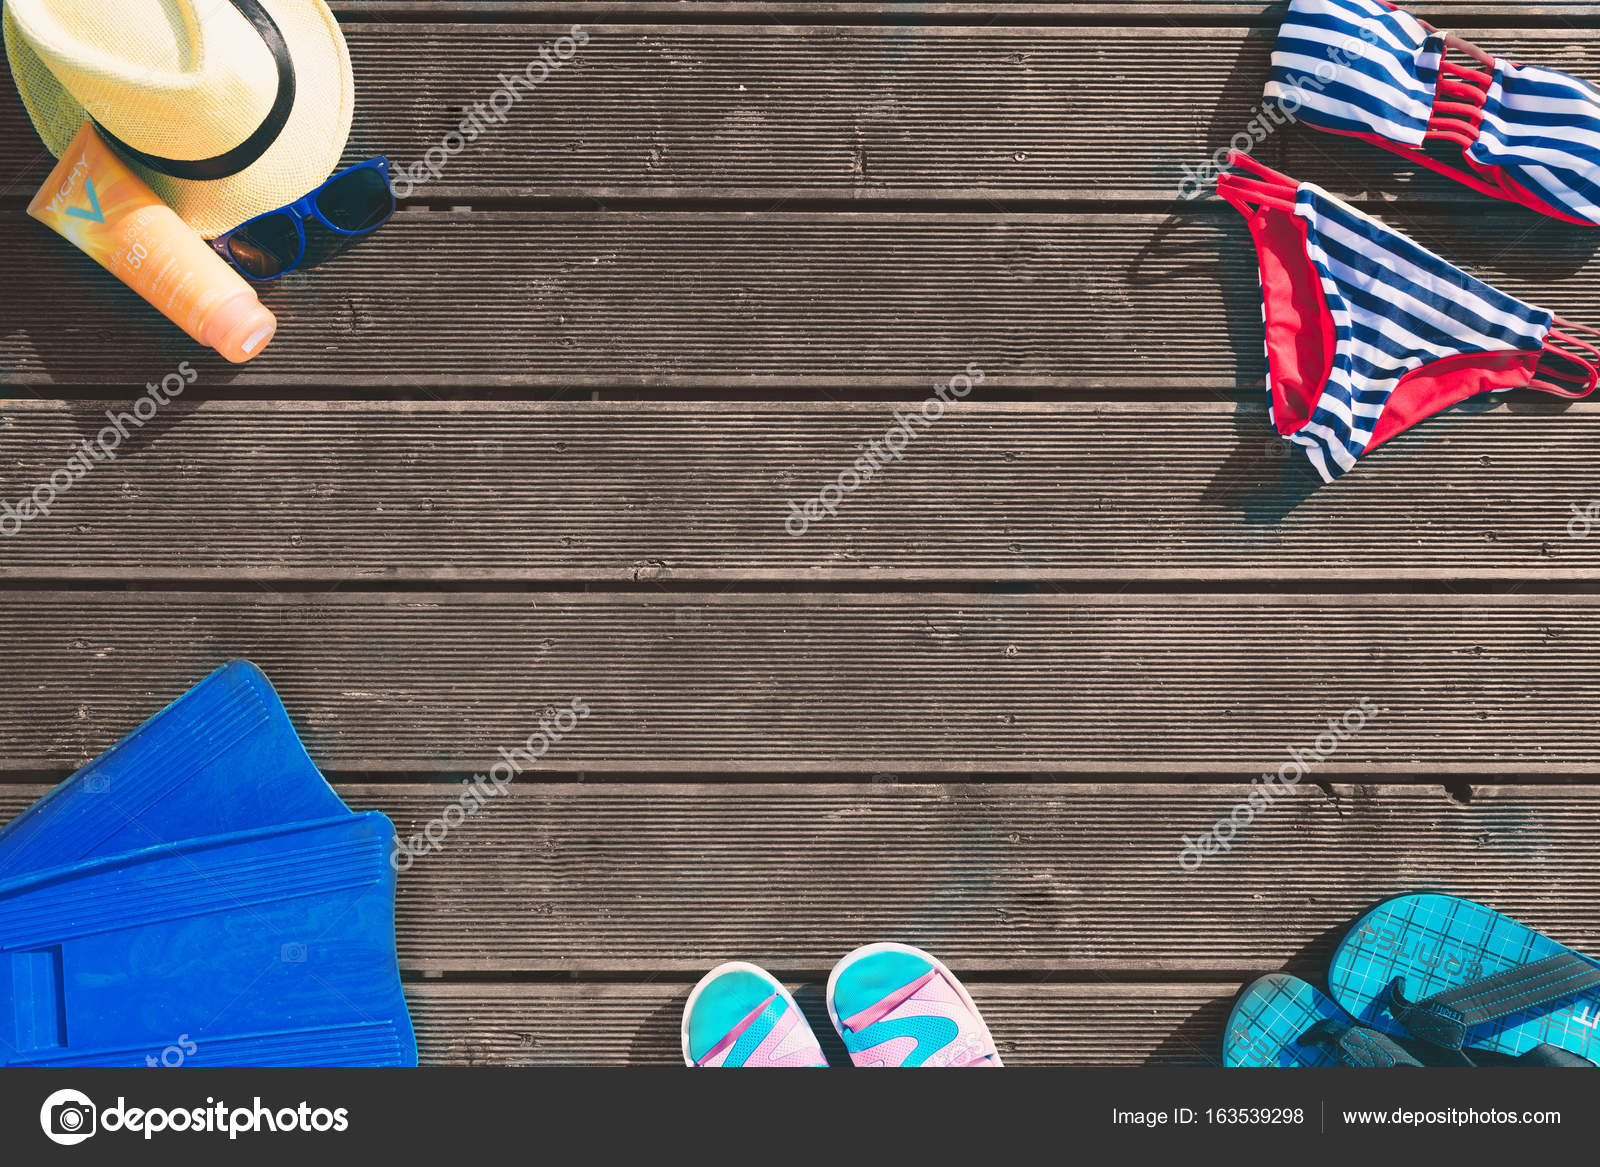 372fc8bb44 Womens beachwear and accessories on wooden background. Beach clothing  concept. — Stock · Concept of luxury vacation. Cola on the pier.